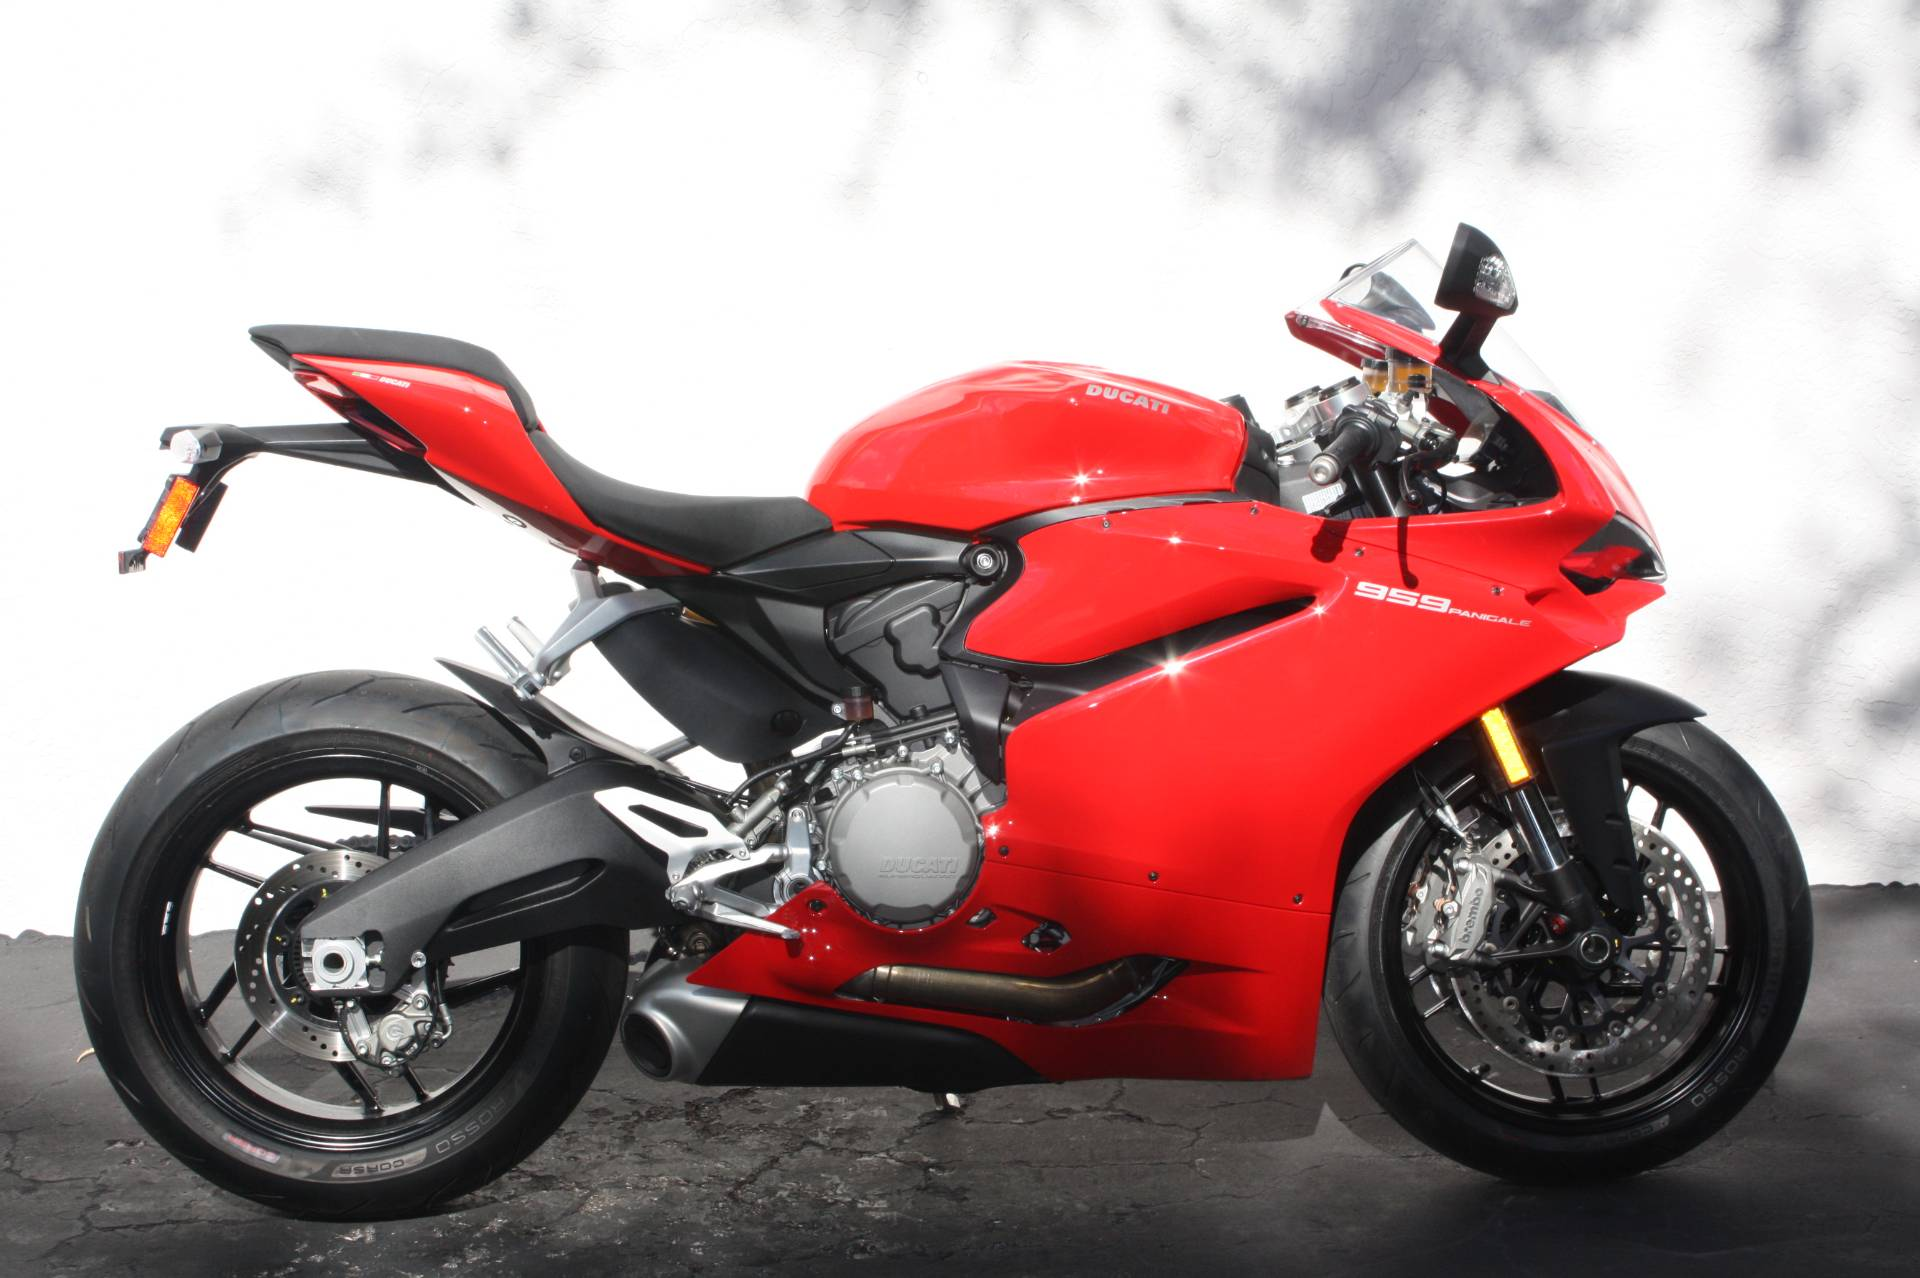 2017 2017 959 Panigale